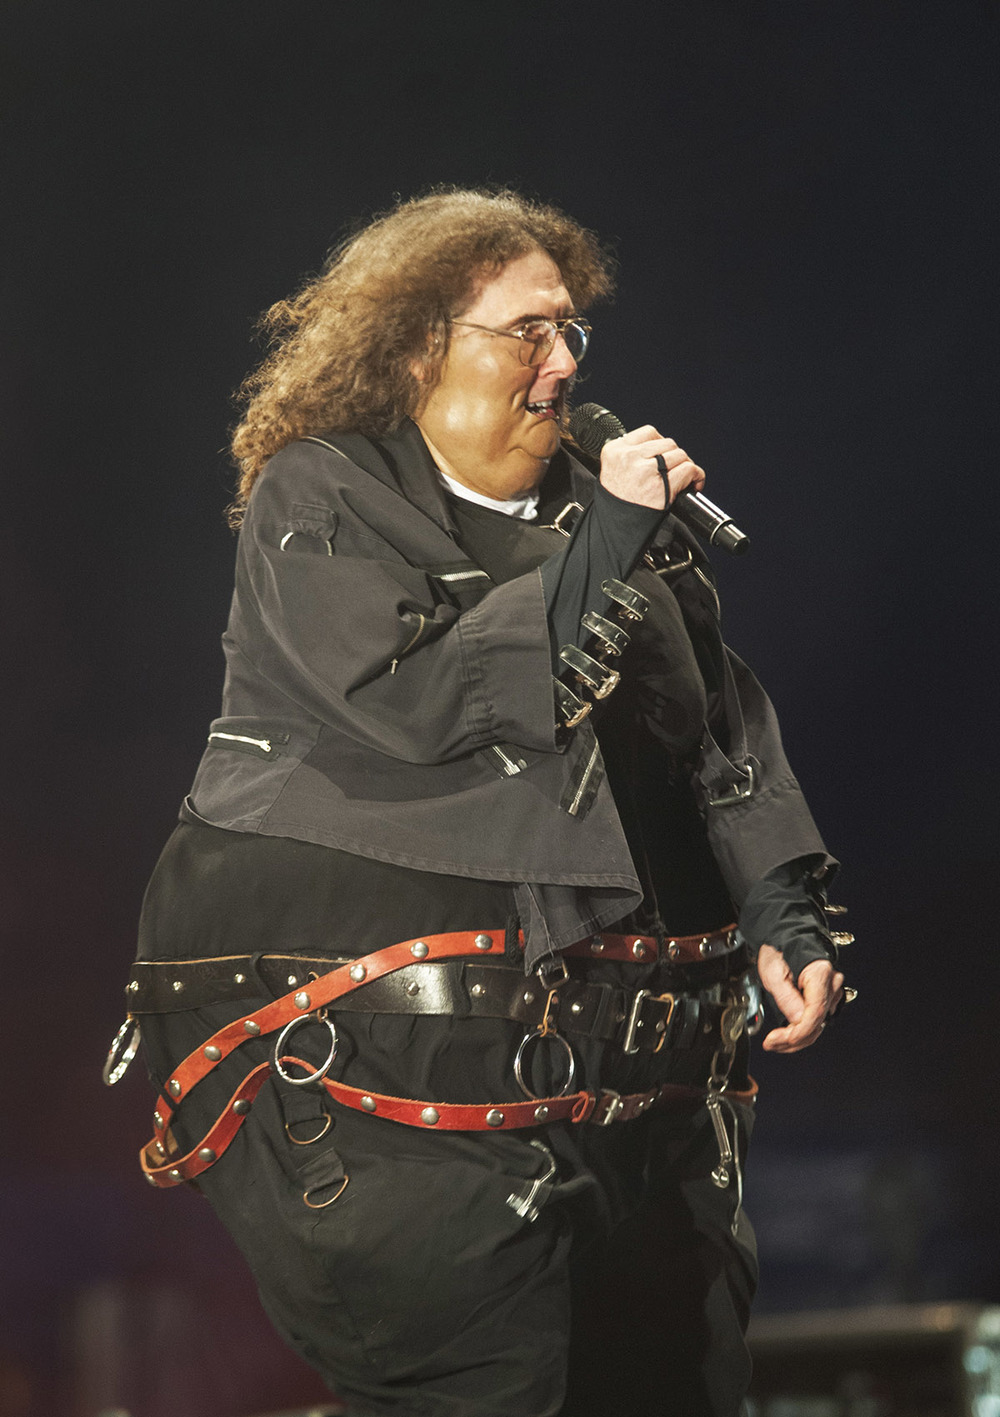 'Weird Al' Yankovic performs on night one of the 2015 Falls Festival at Mt Duneed Estate - image courtesy of Kirsty Umback